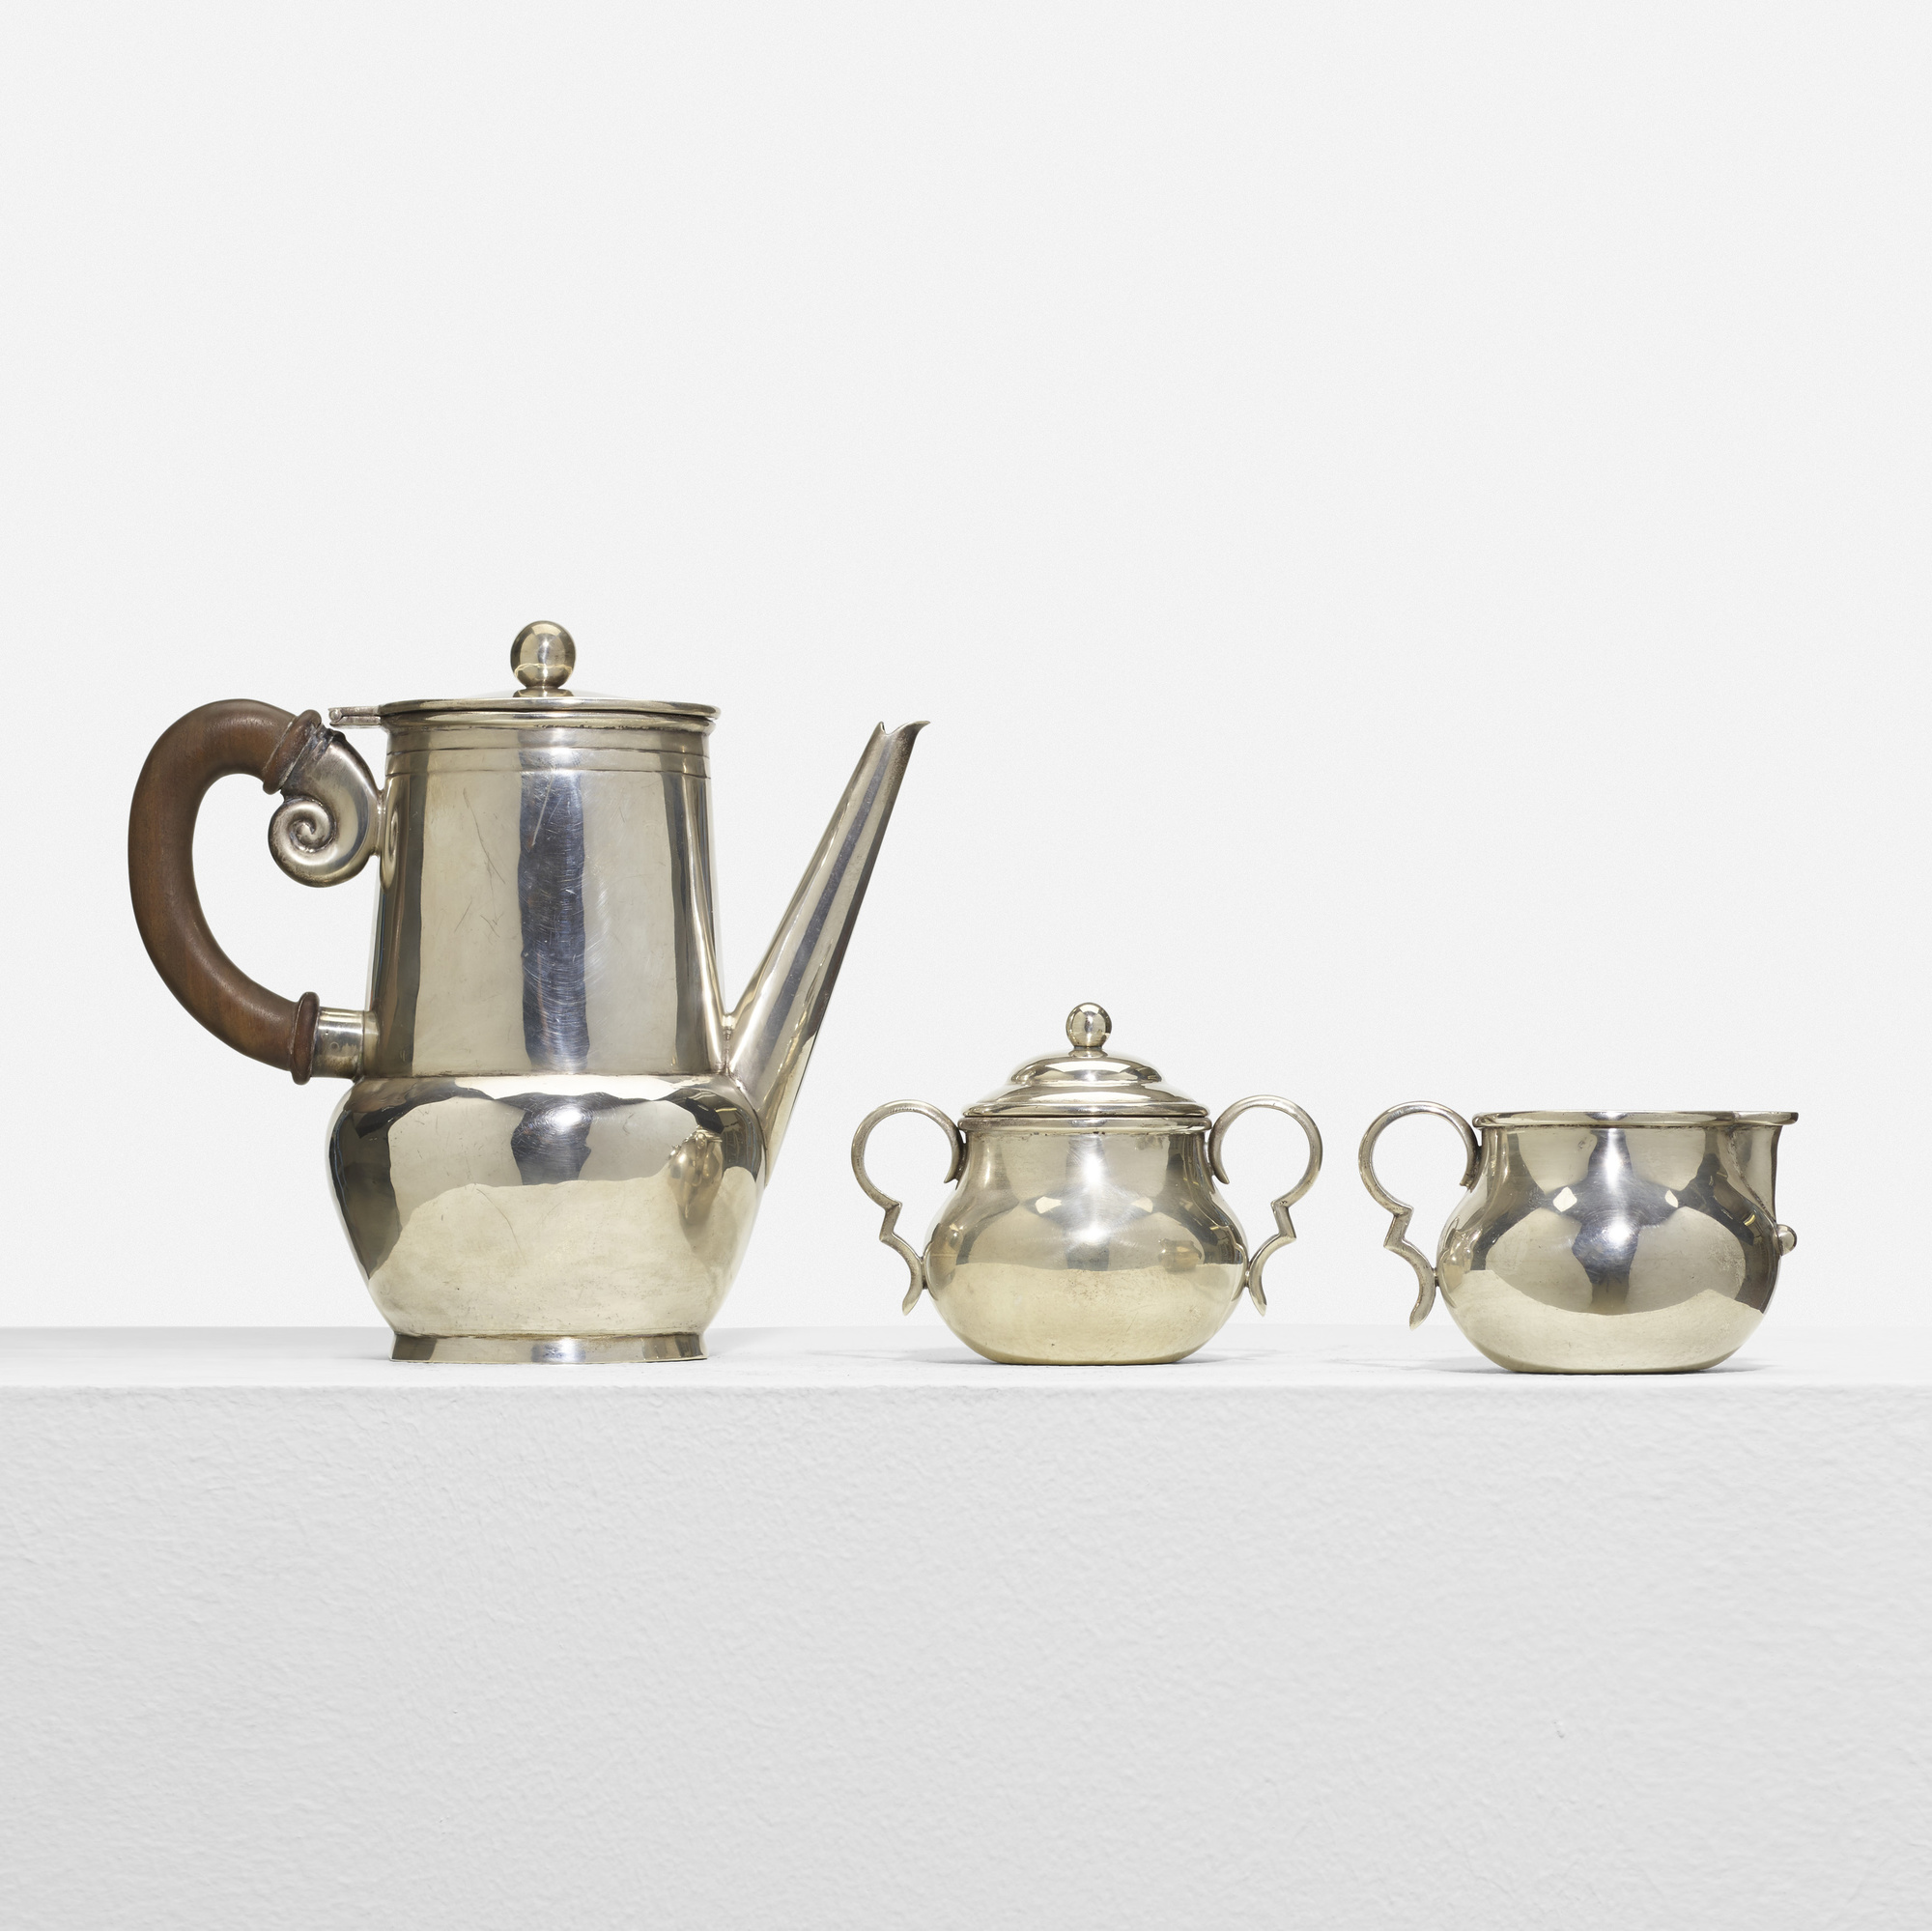 164: William Spratling / tea set (1 of 4)